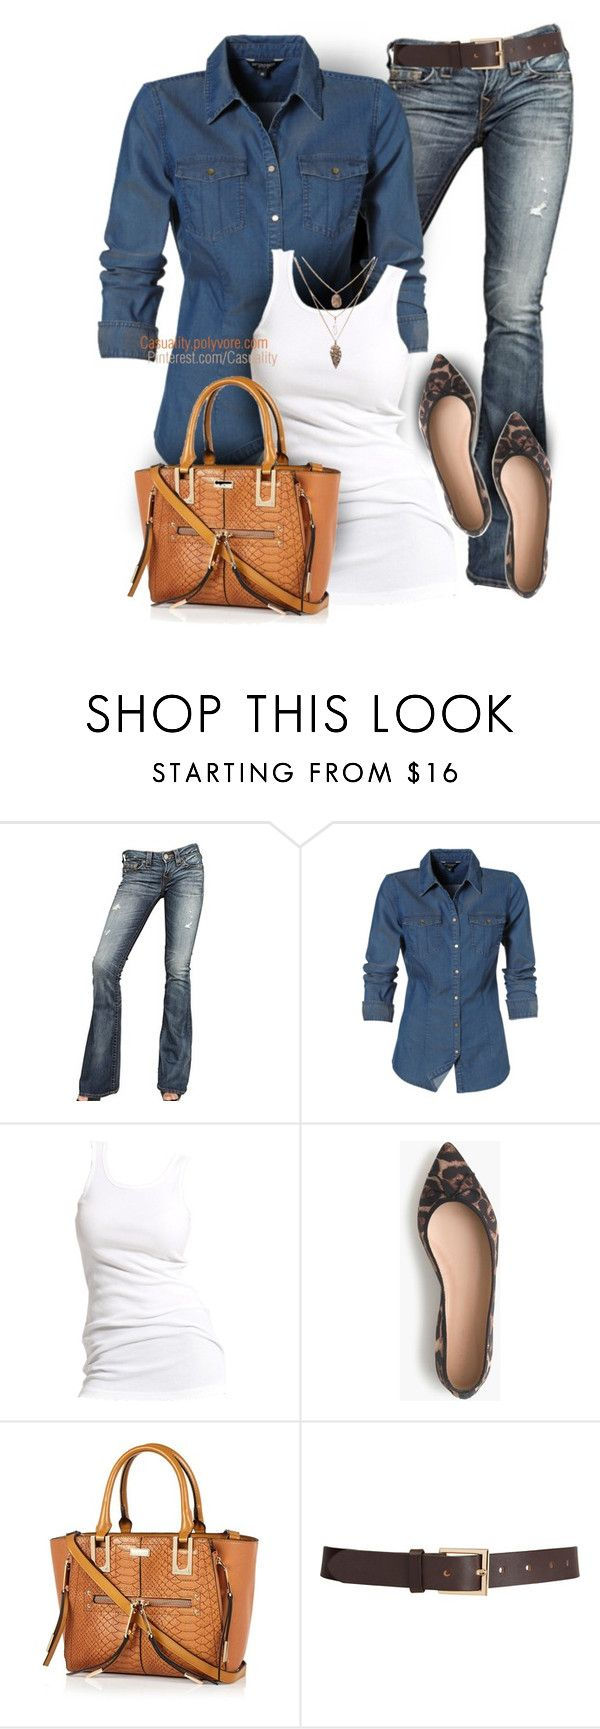 J. Crew & River Island Casual by casuality on Polyvore featuring Soaked in Luxury, True Religion, J.Crew, River Island and Barneys New York